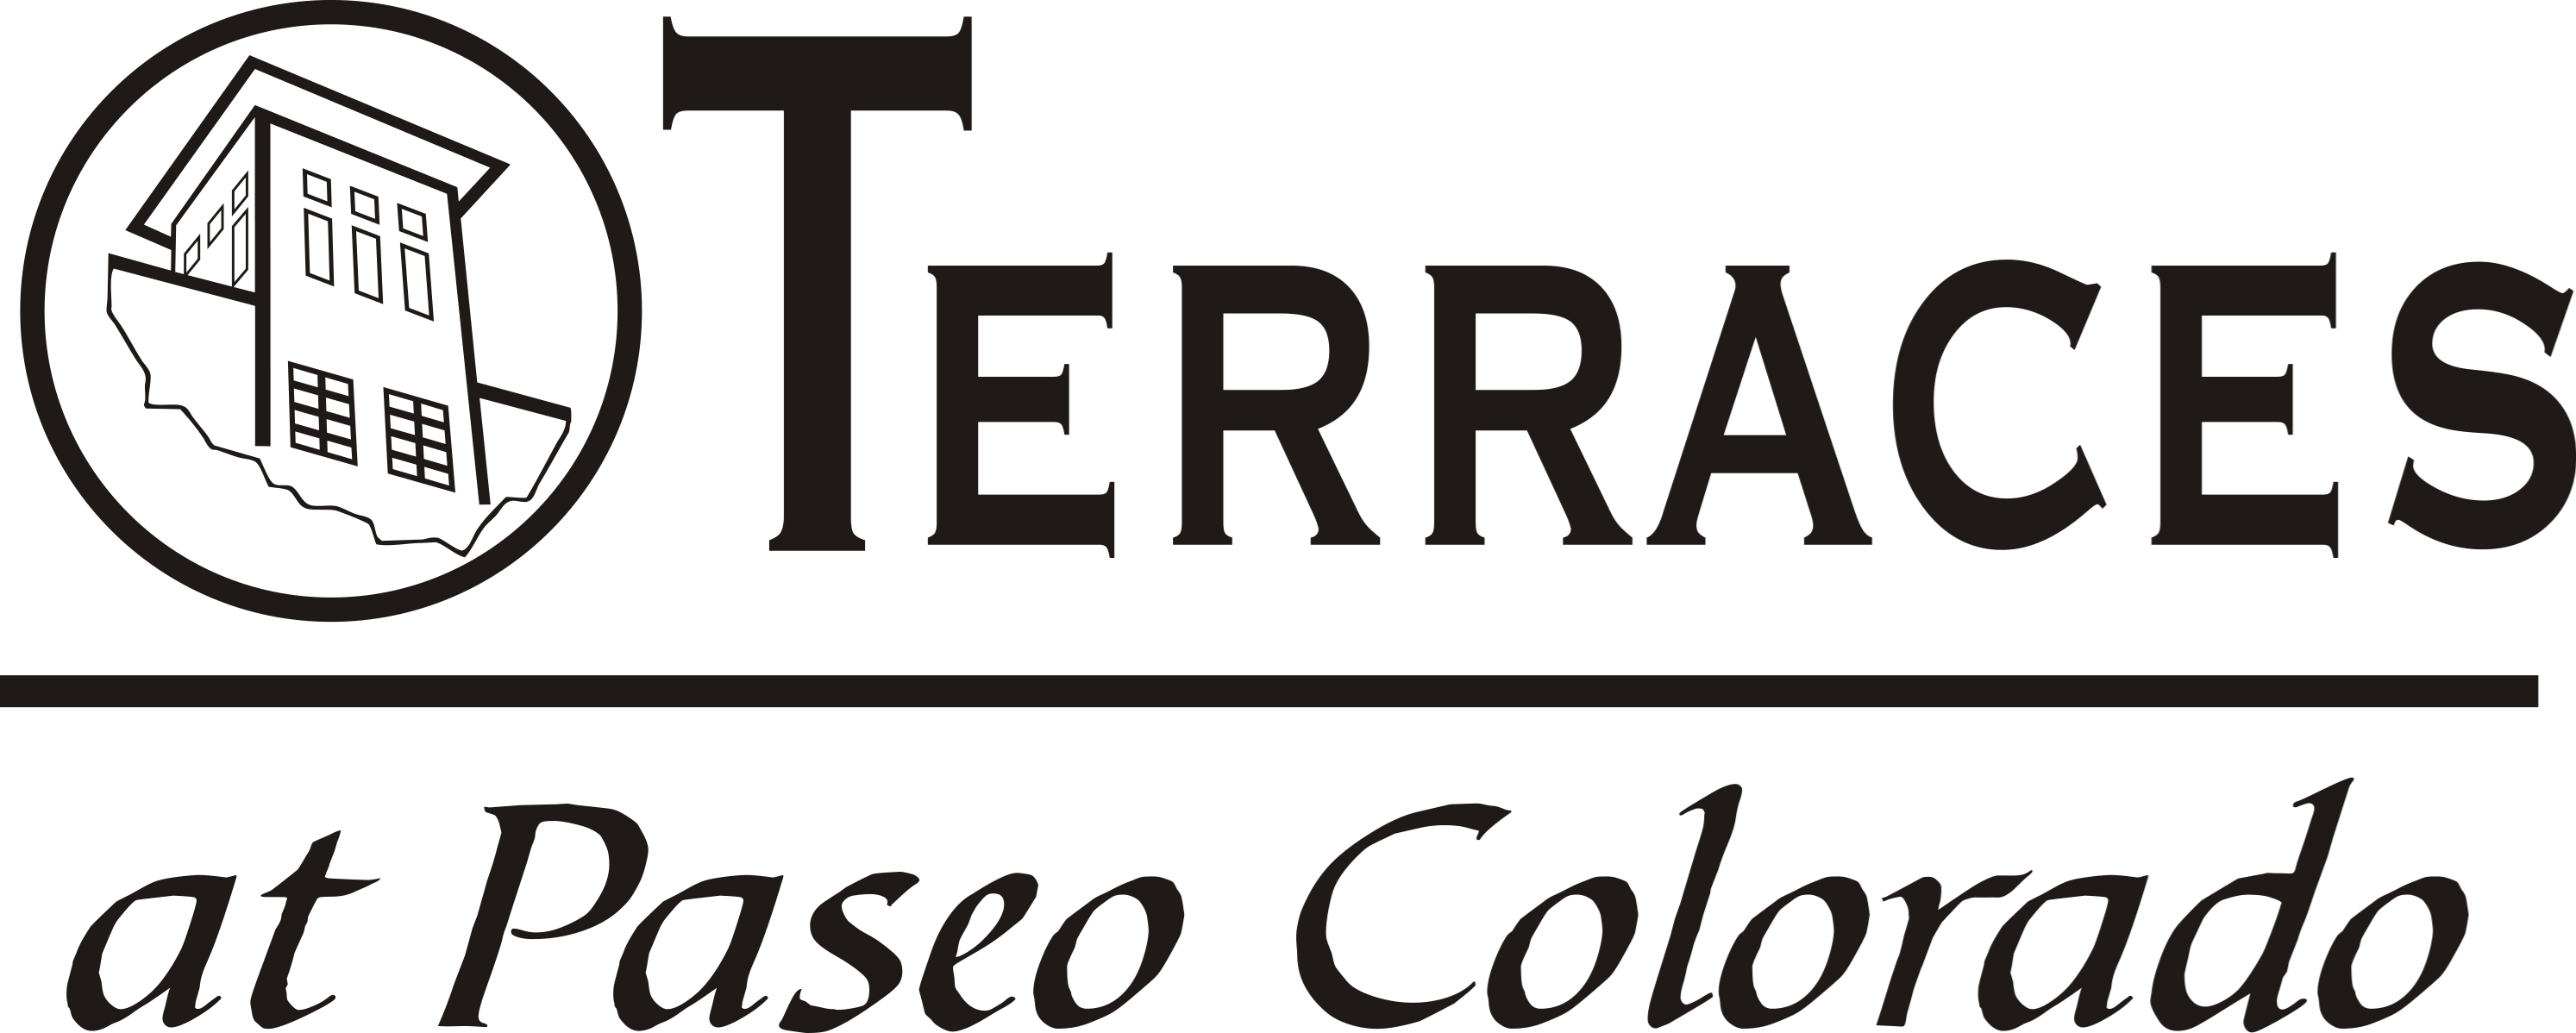 Terraces at Paseo Colorado Logo, Pasadena, CA, 91101